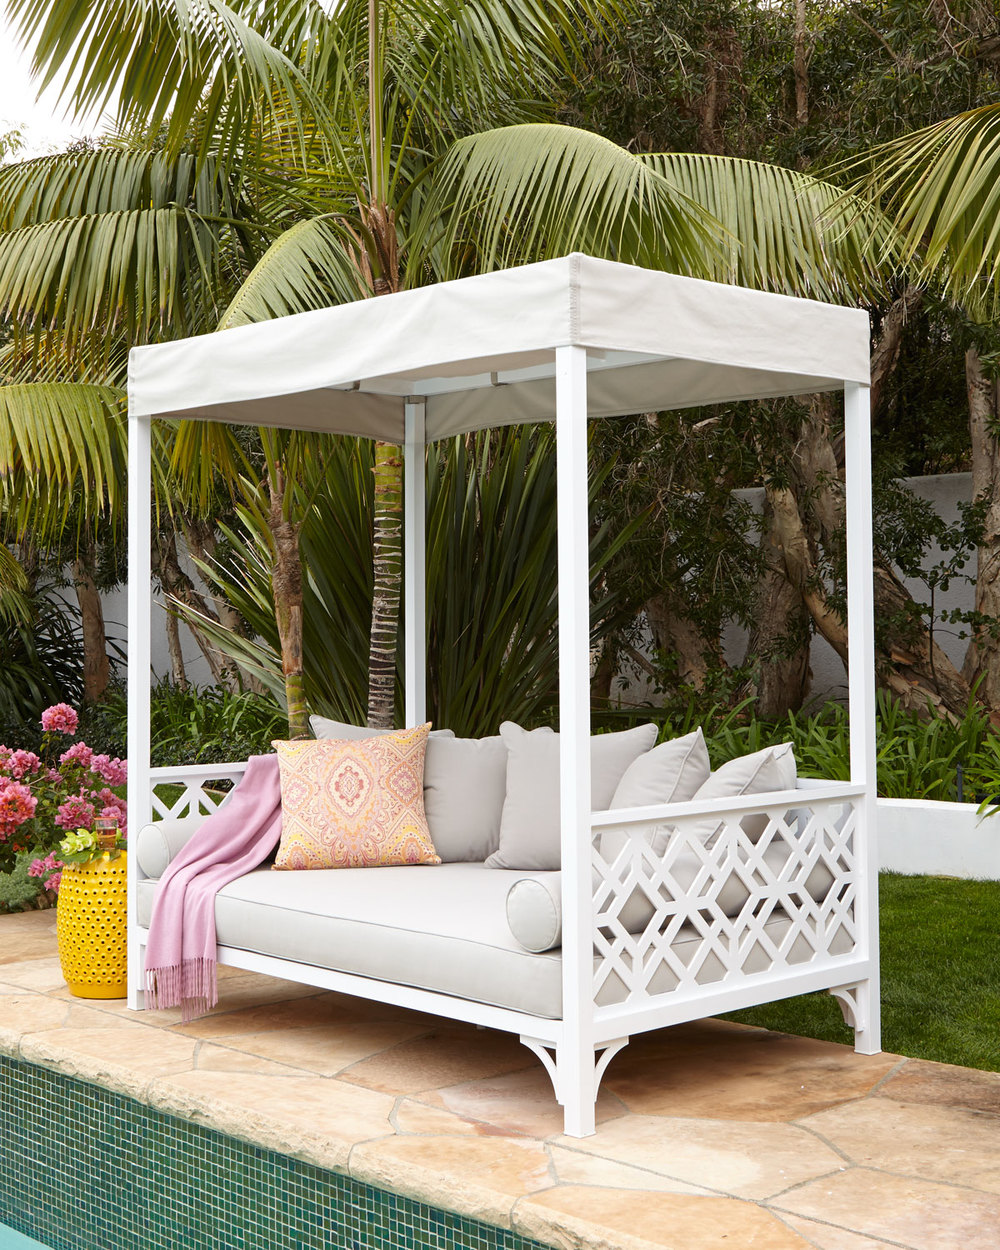 Photo courtesy of Horchow & MADE IN THE SHADE: A CANOPY-COVERED OUTDOOR DAYBED MADE FOR ...